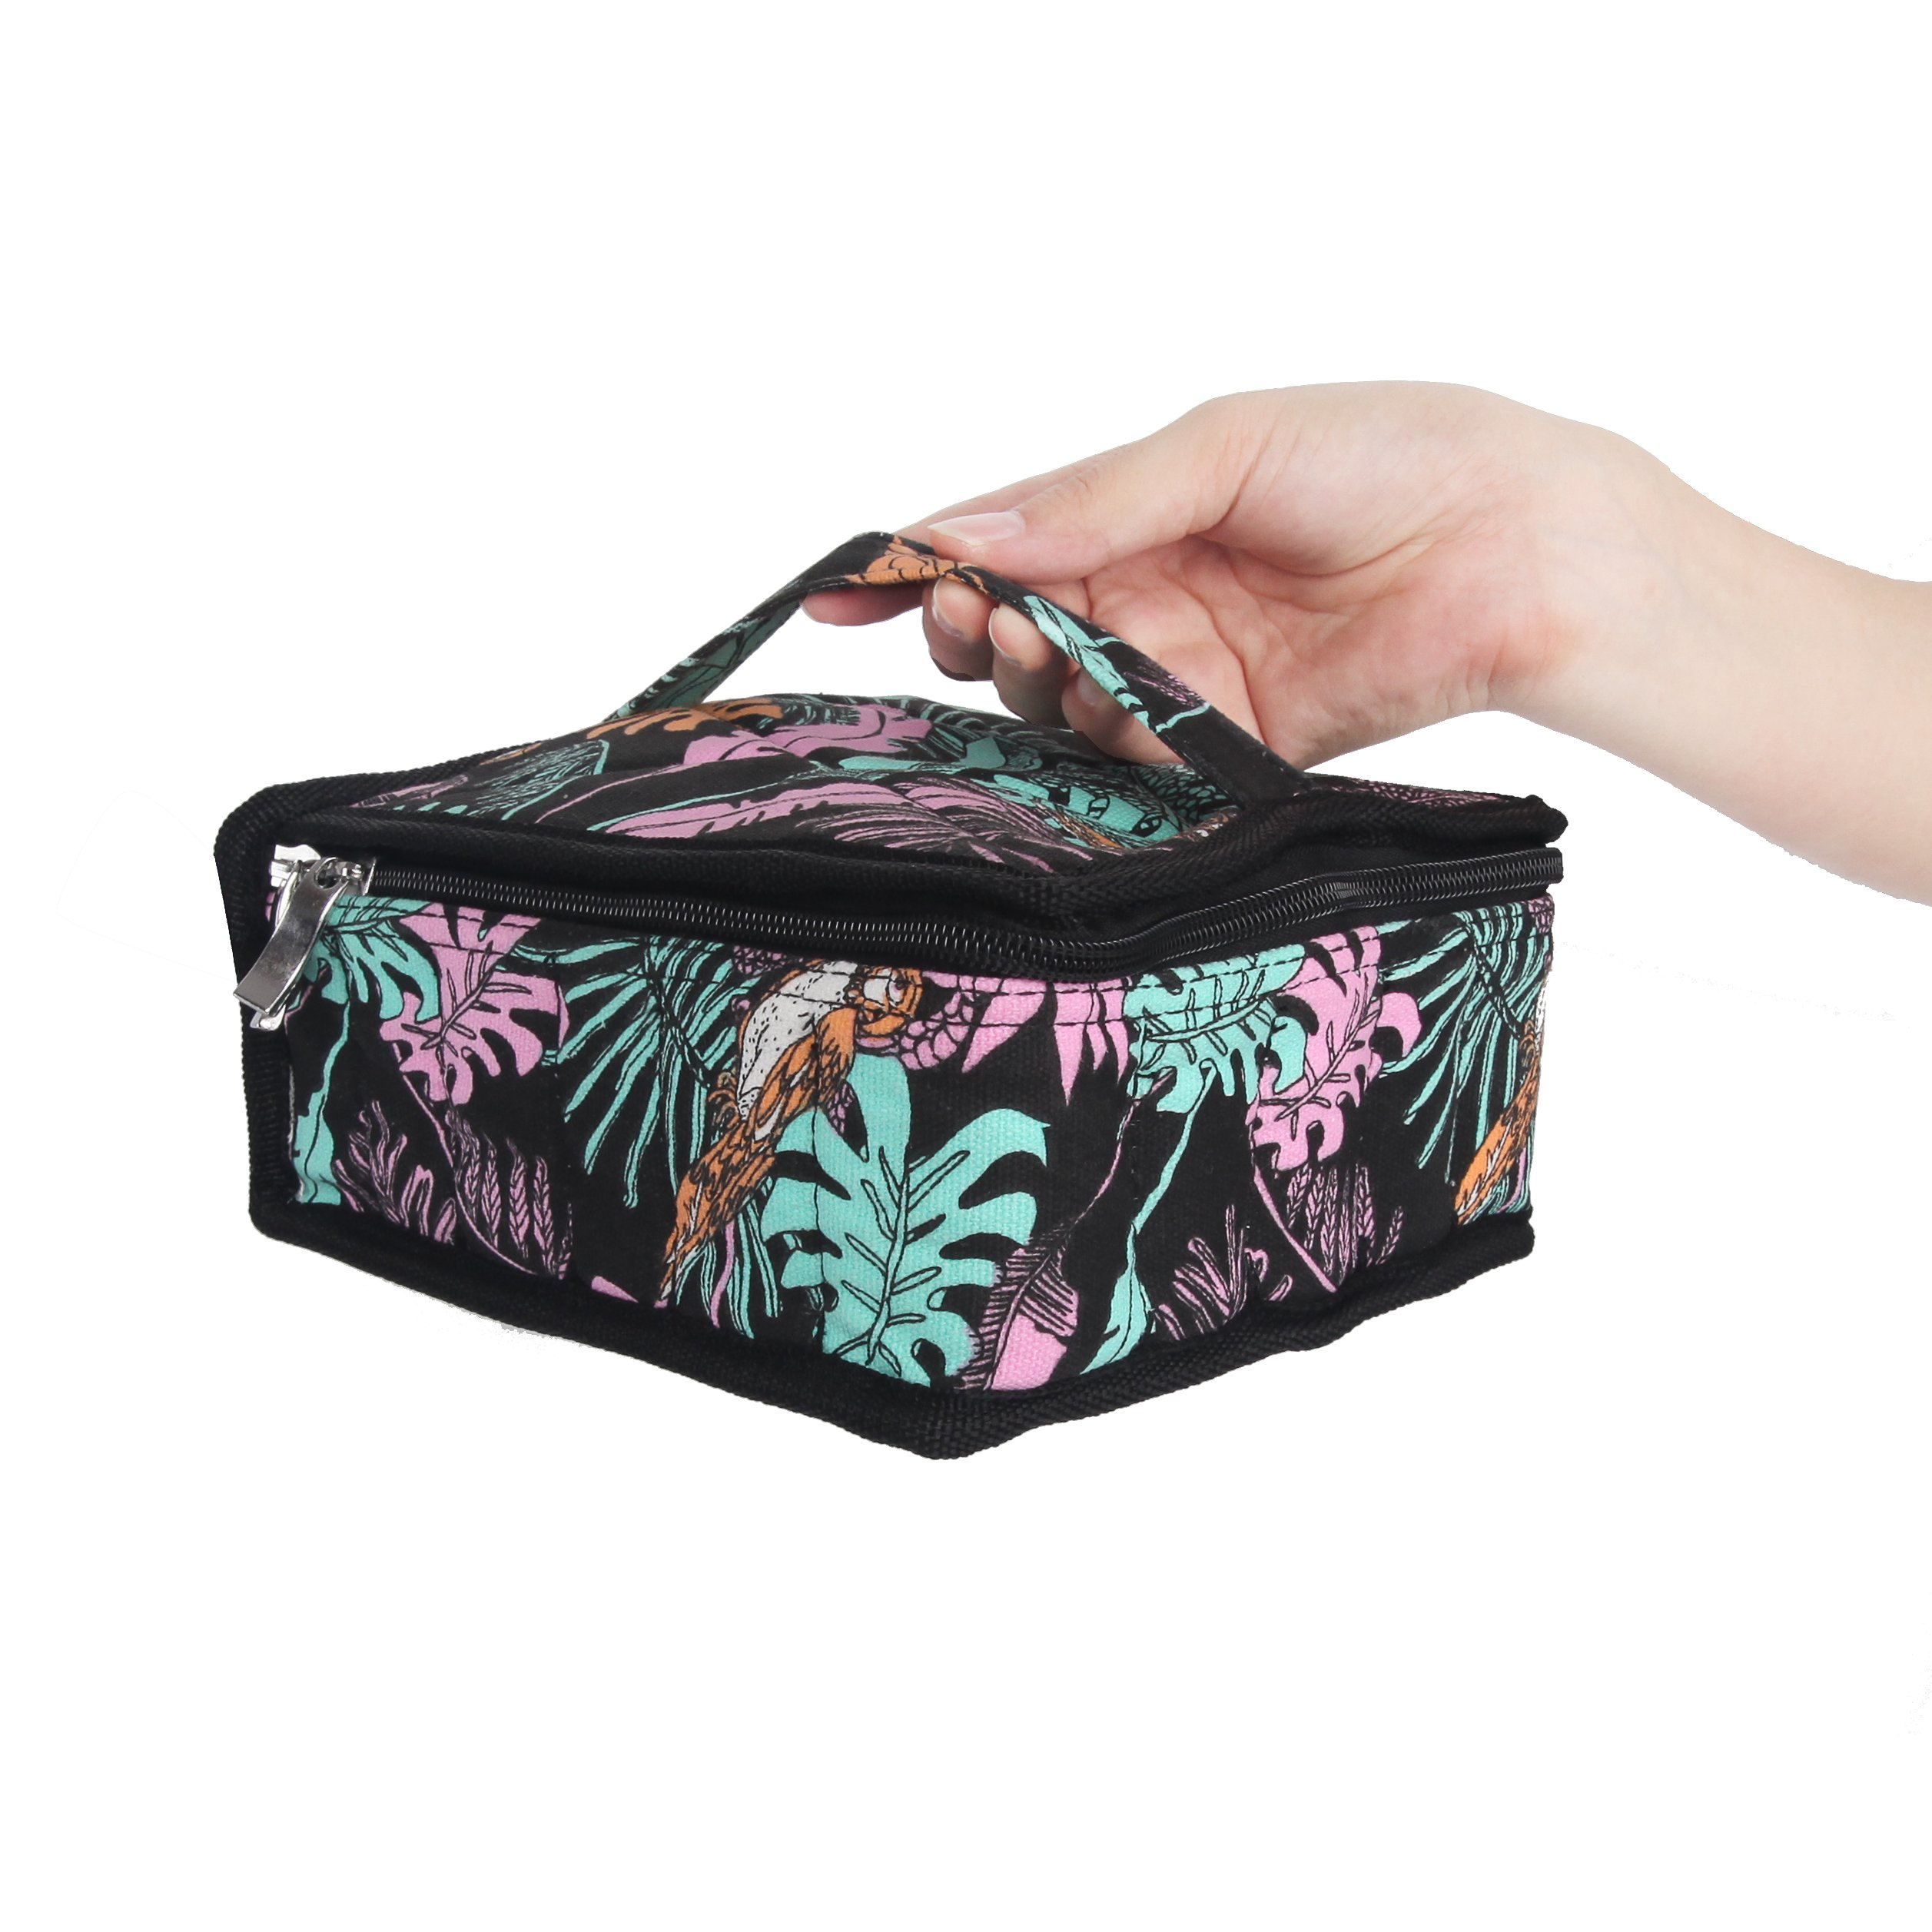 Essential Oils Storage - pureGLO 30 Bottle Essential Oil Carrying Case - Essential Oil Organizer Bag Travel Carrier Holds 5ml, 10ml, 15ml Vials - Holder for Young Living & Doterra Containers Floral